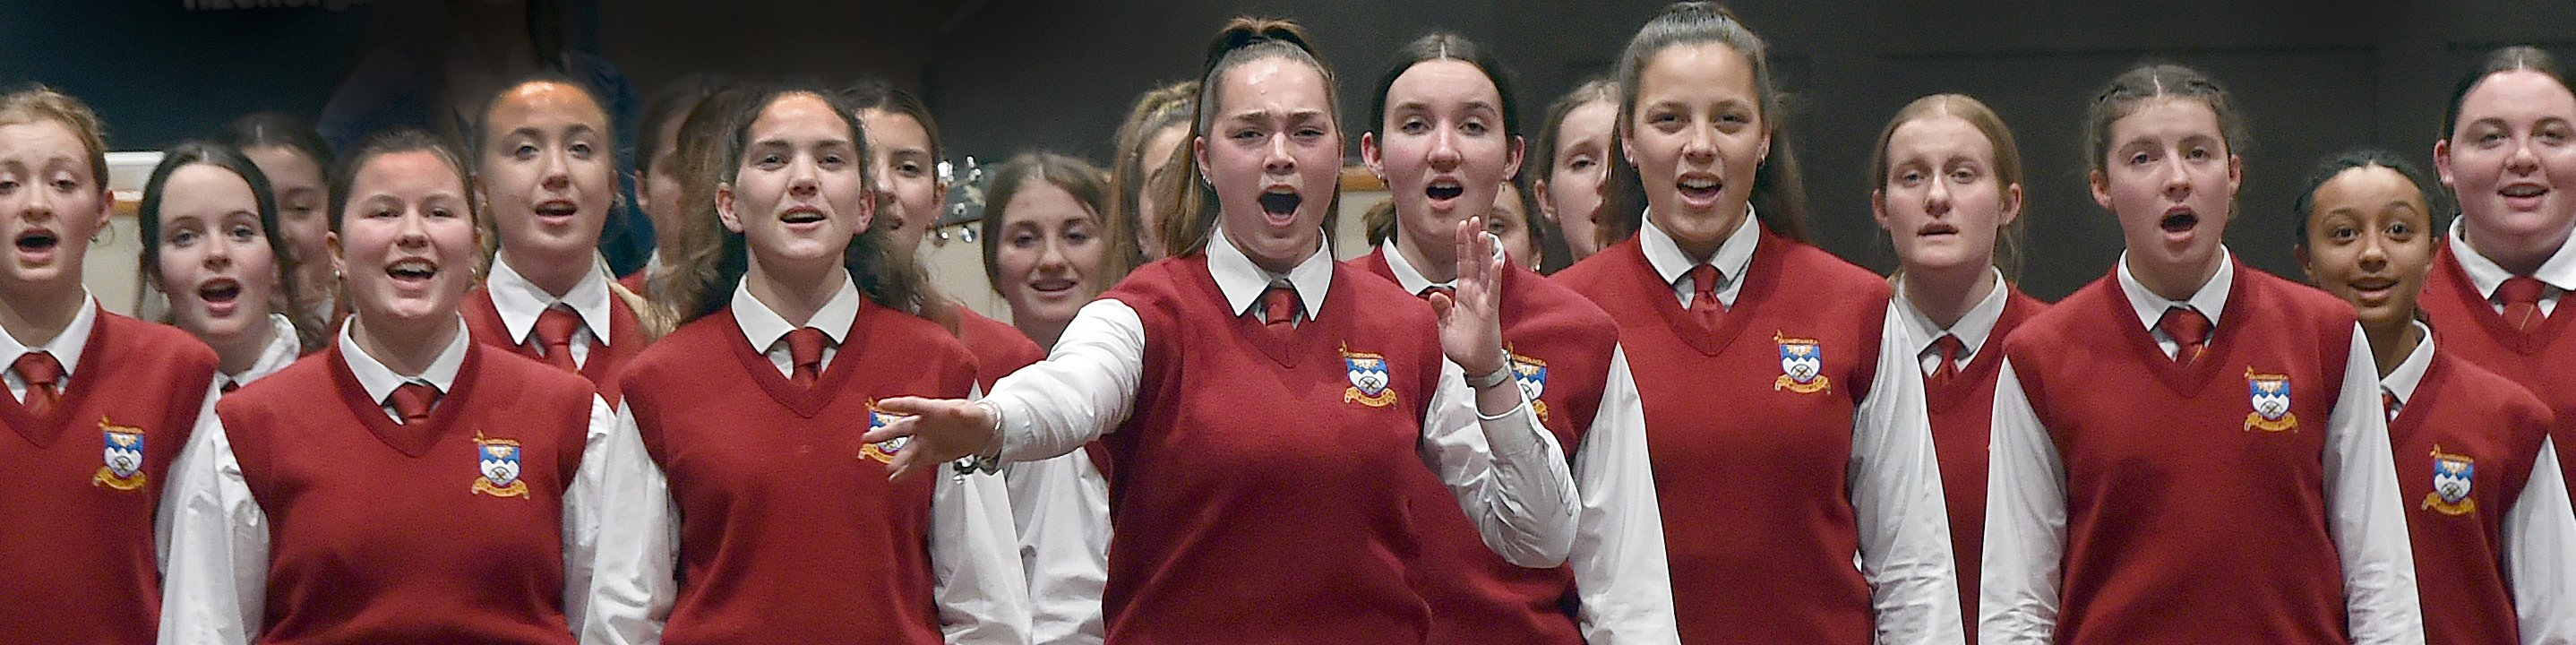 Aja Tate-Bell (17) leads the Dunstan High School choir at the Big Sing 2021 regional competition...